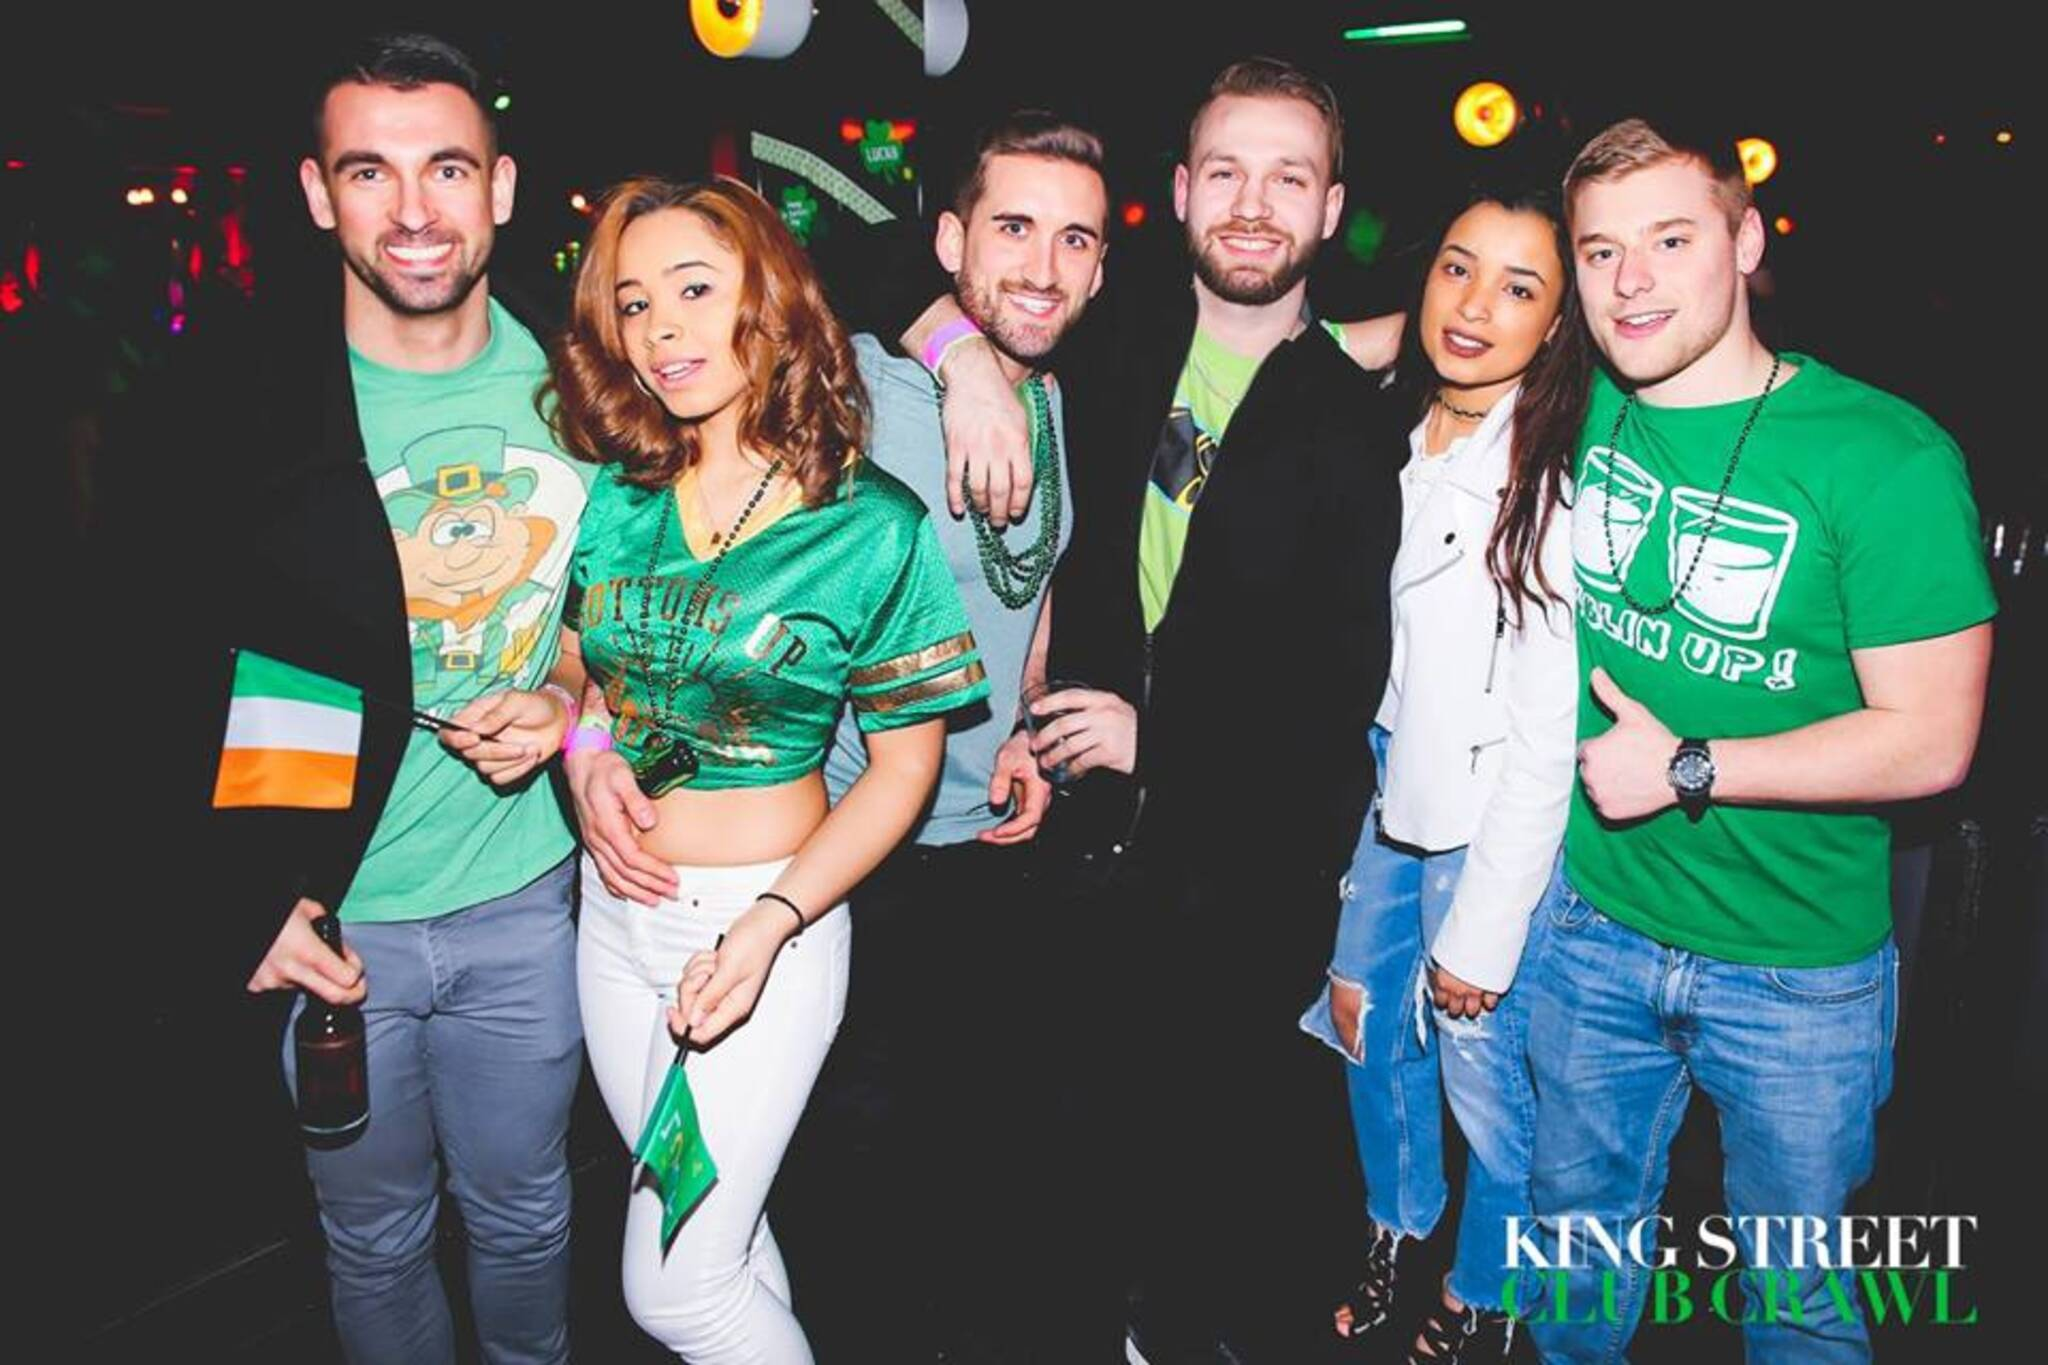 Toronto St  Pattys Day King Street Club Crawl 2019